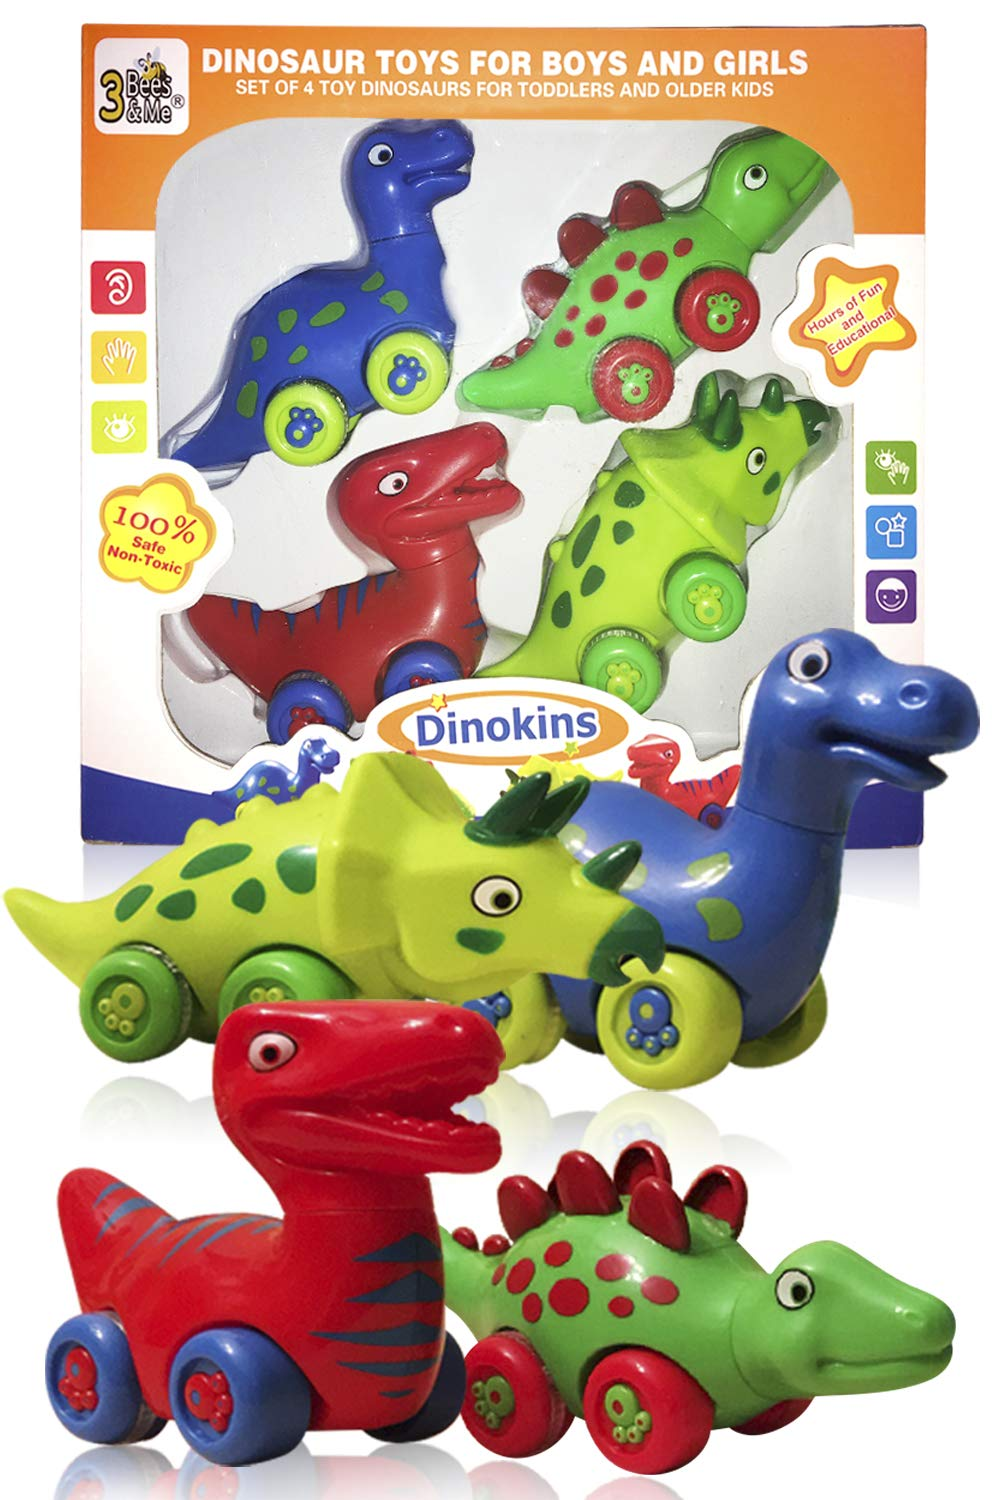 3 Bees & Me Dinosaur Toys for Boys and Girls - Set of 4 Toy Dinosaurs